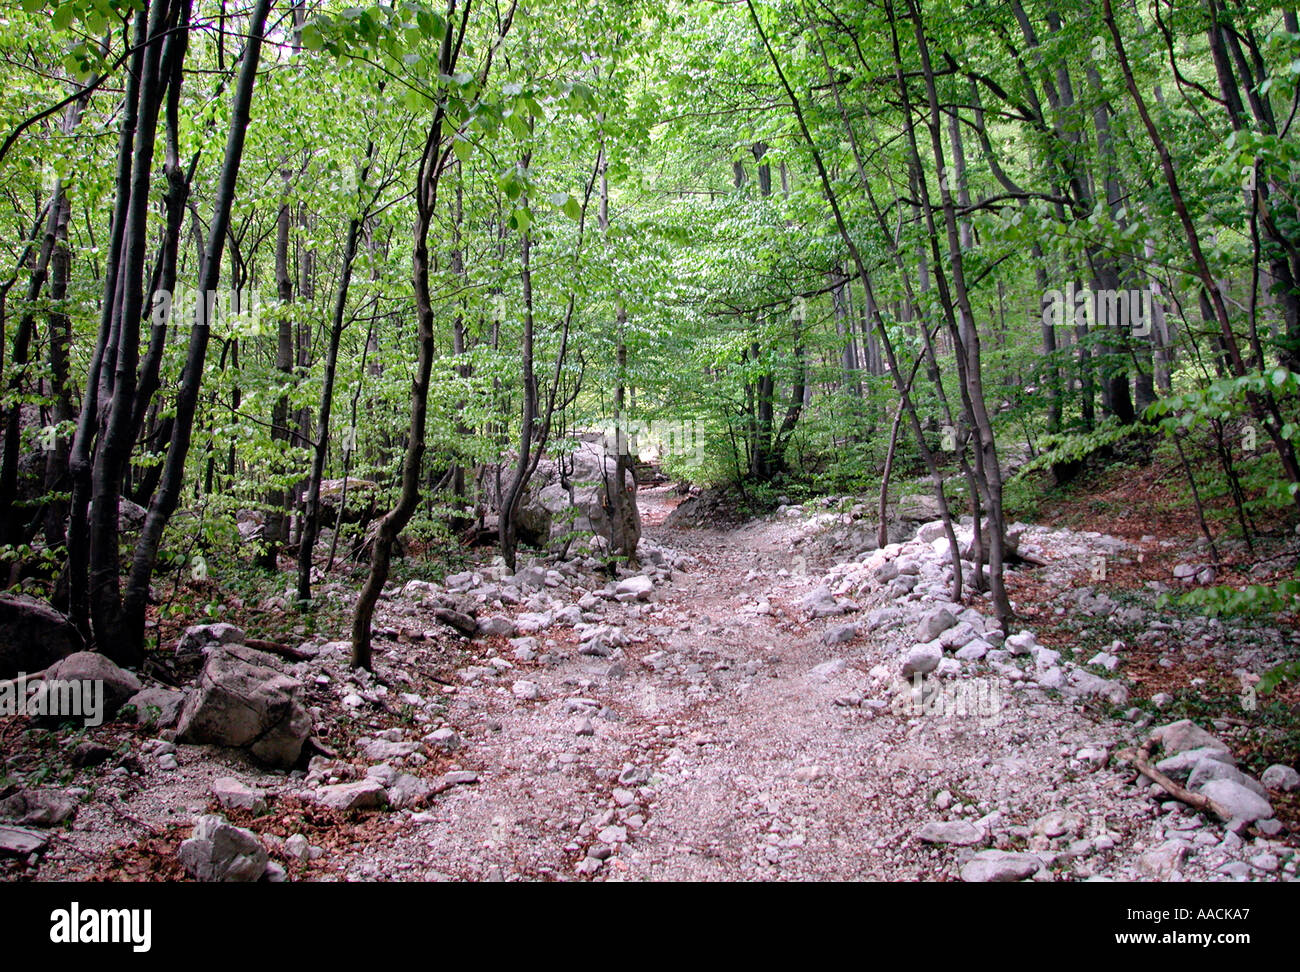 stony forest track through young beech forest in the springtime in Slovenia Stock Photo